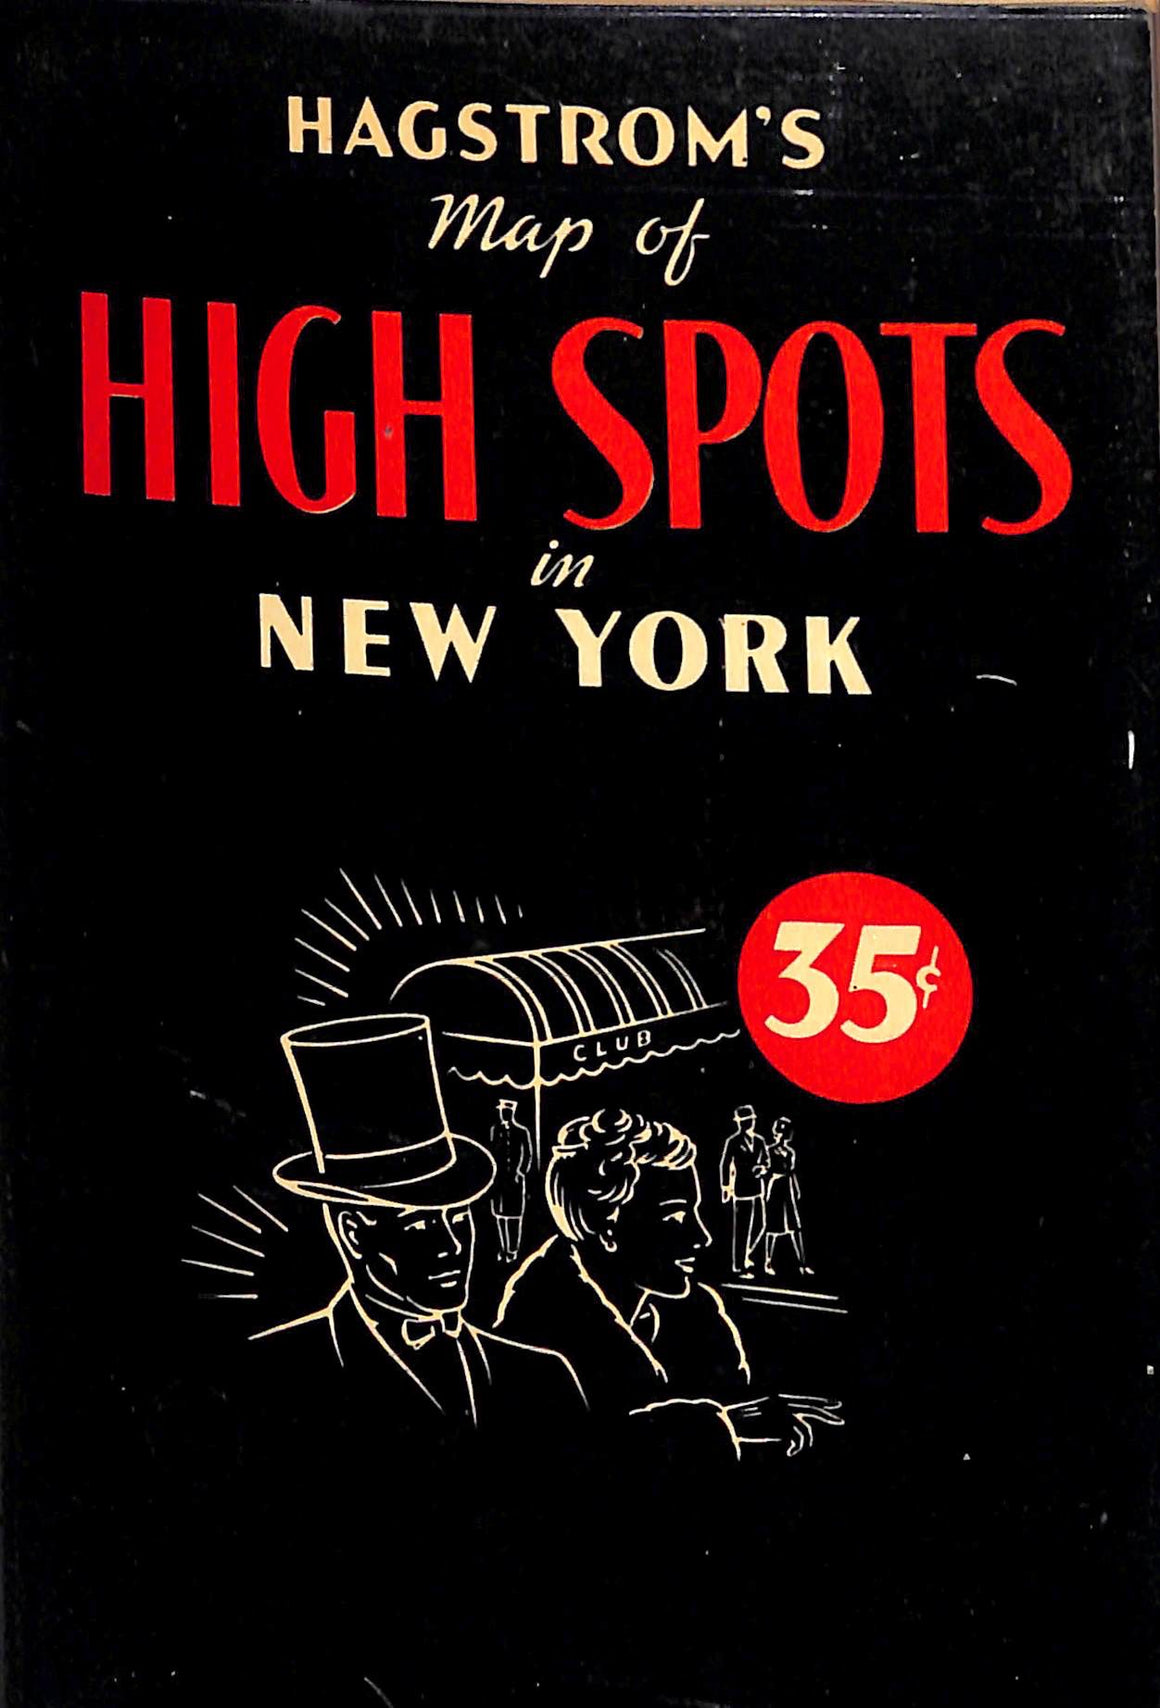 """Hagstrom's c1960 Map of High Spots in New York"""